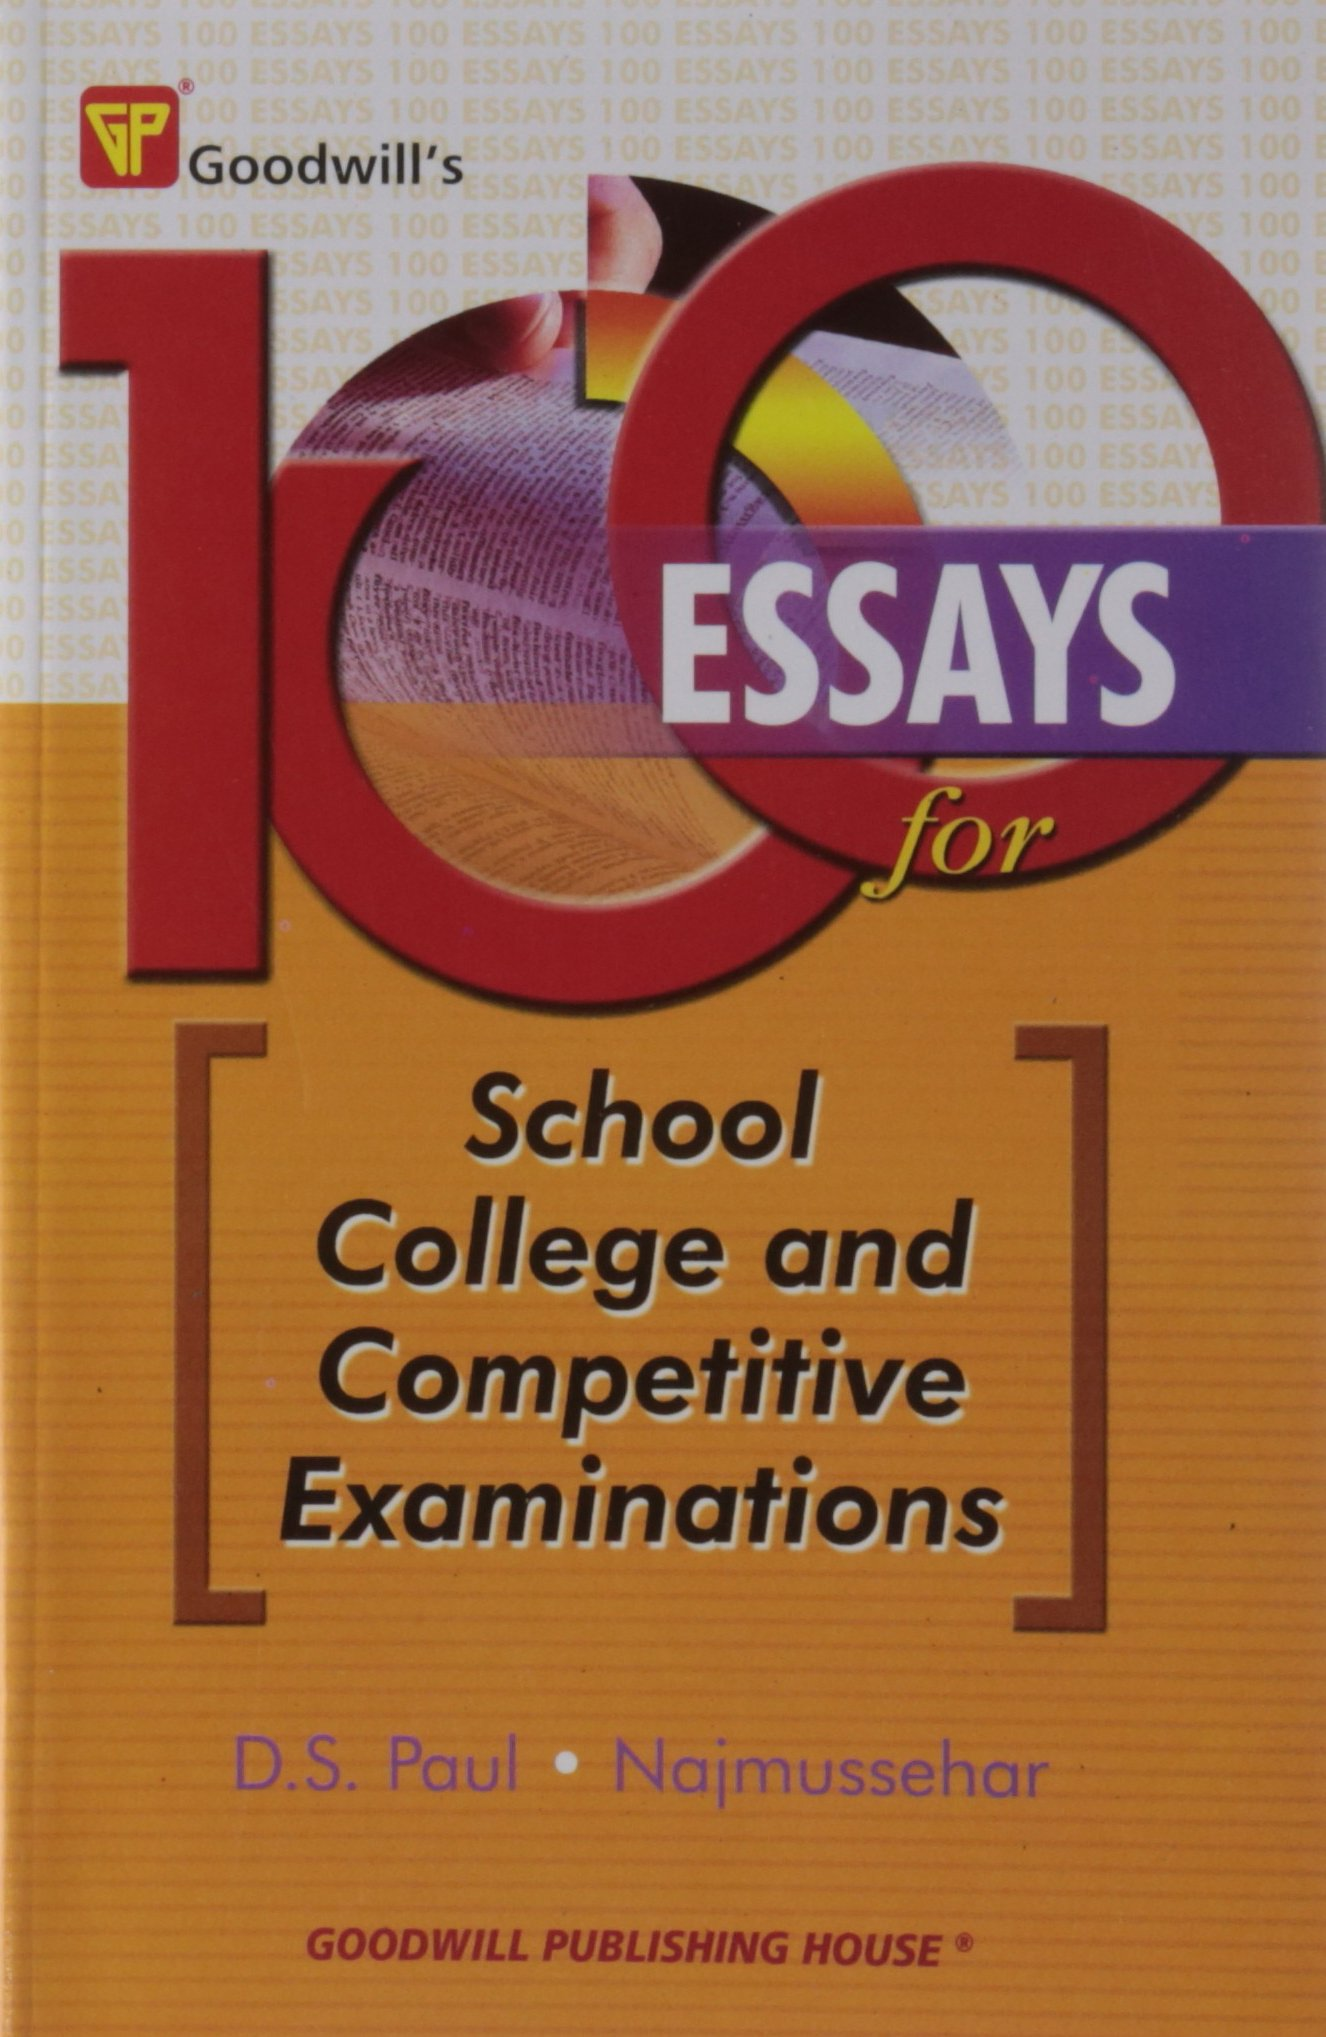 buy essays for school college and competitive examinations buy 100 essays for school college and competitive examinations book online at low prices in 100 essays for school college and competitive